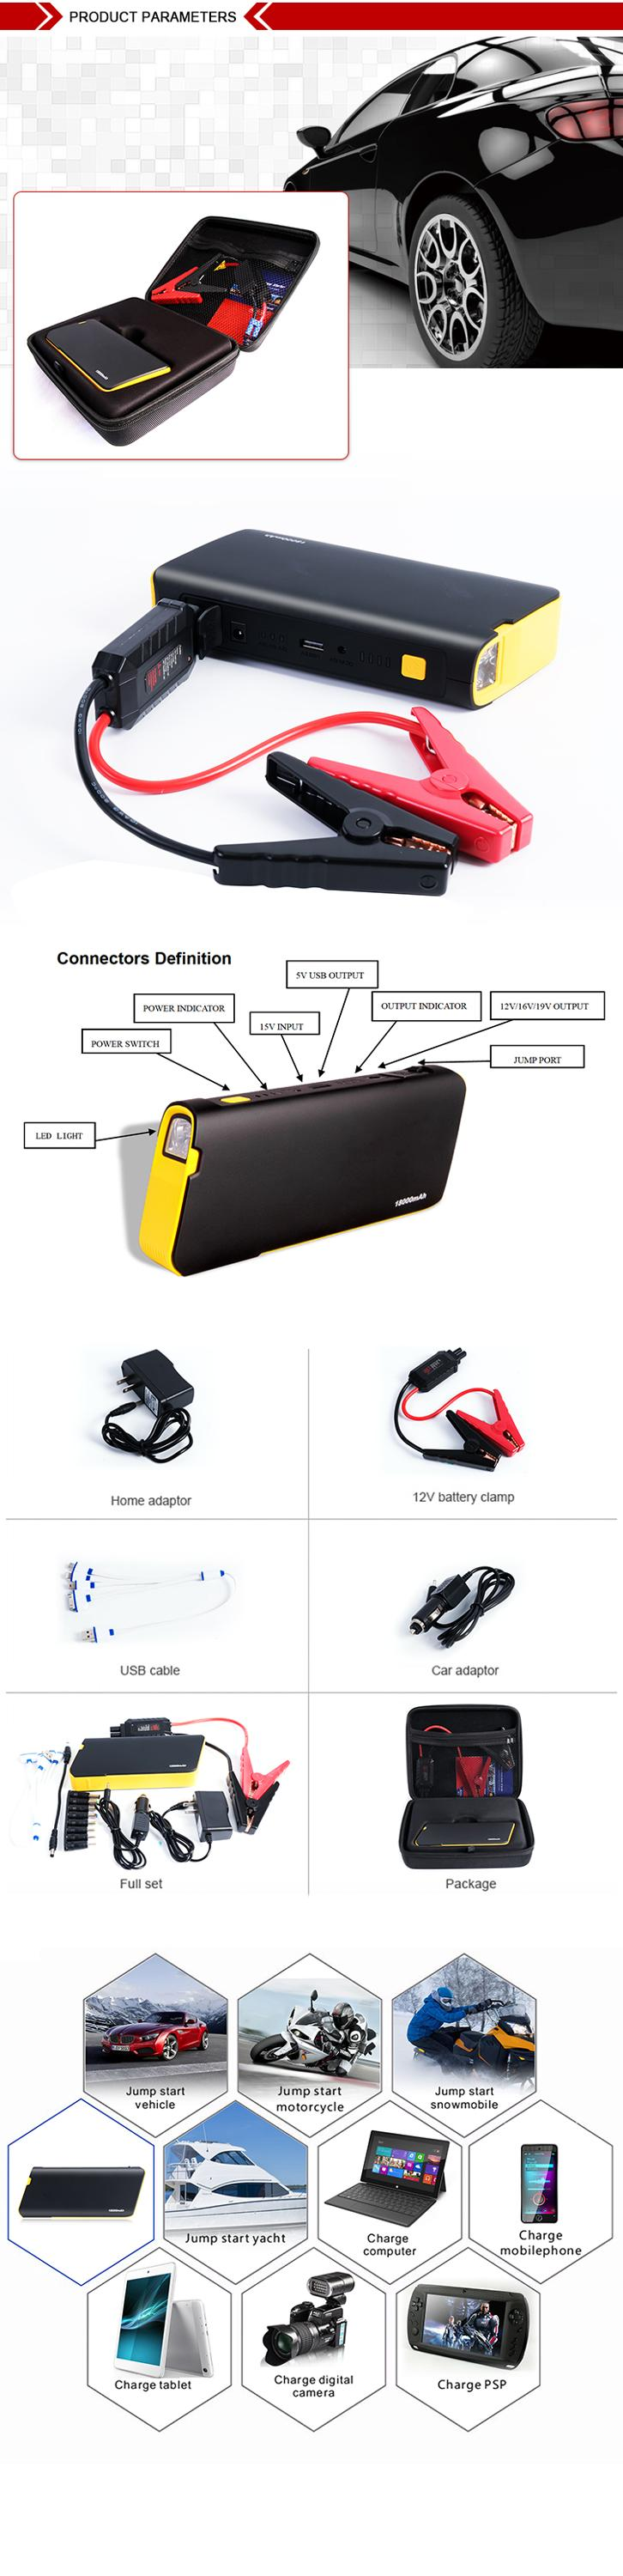 Portable emergency power source 137*77*19mm dimensions multi-functional jump starter